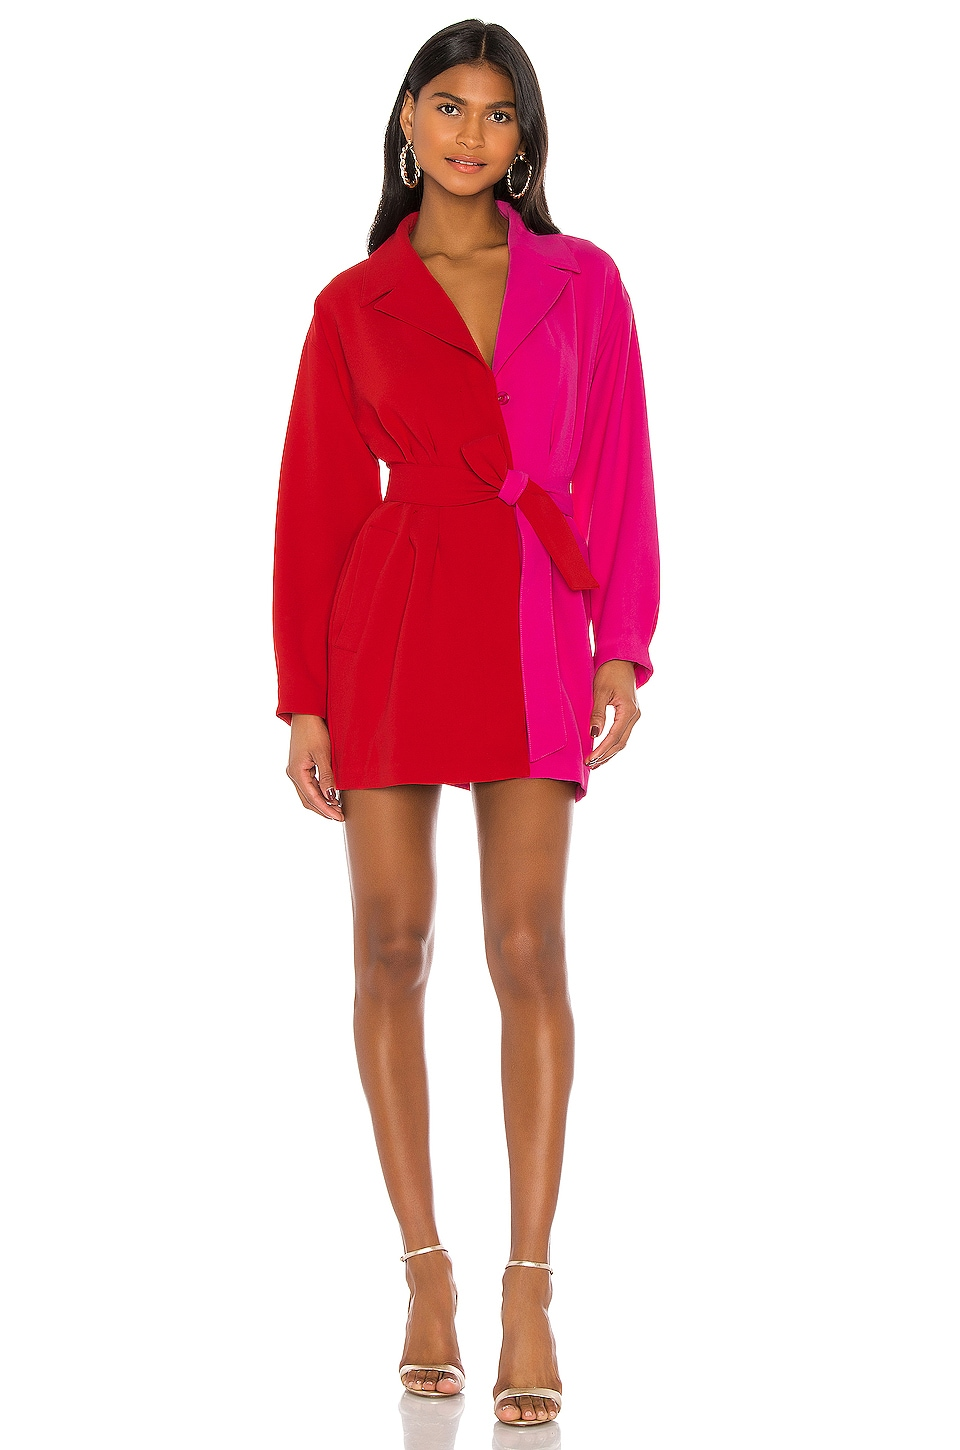 Lovers + Friends The Biccel Mini Dress in Red & Pink